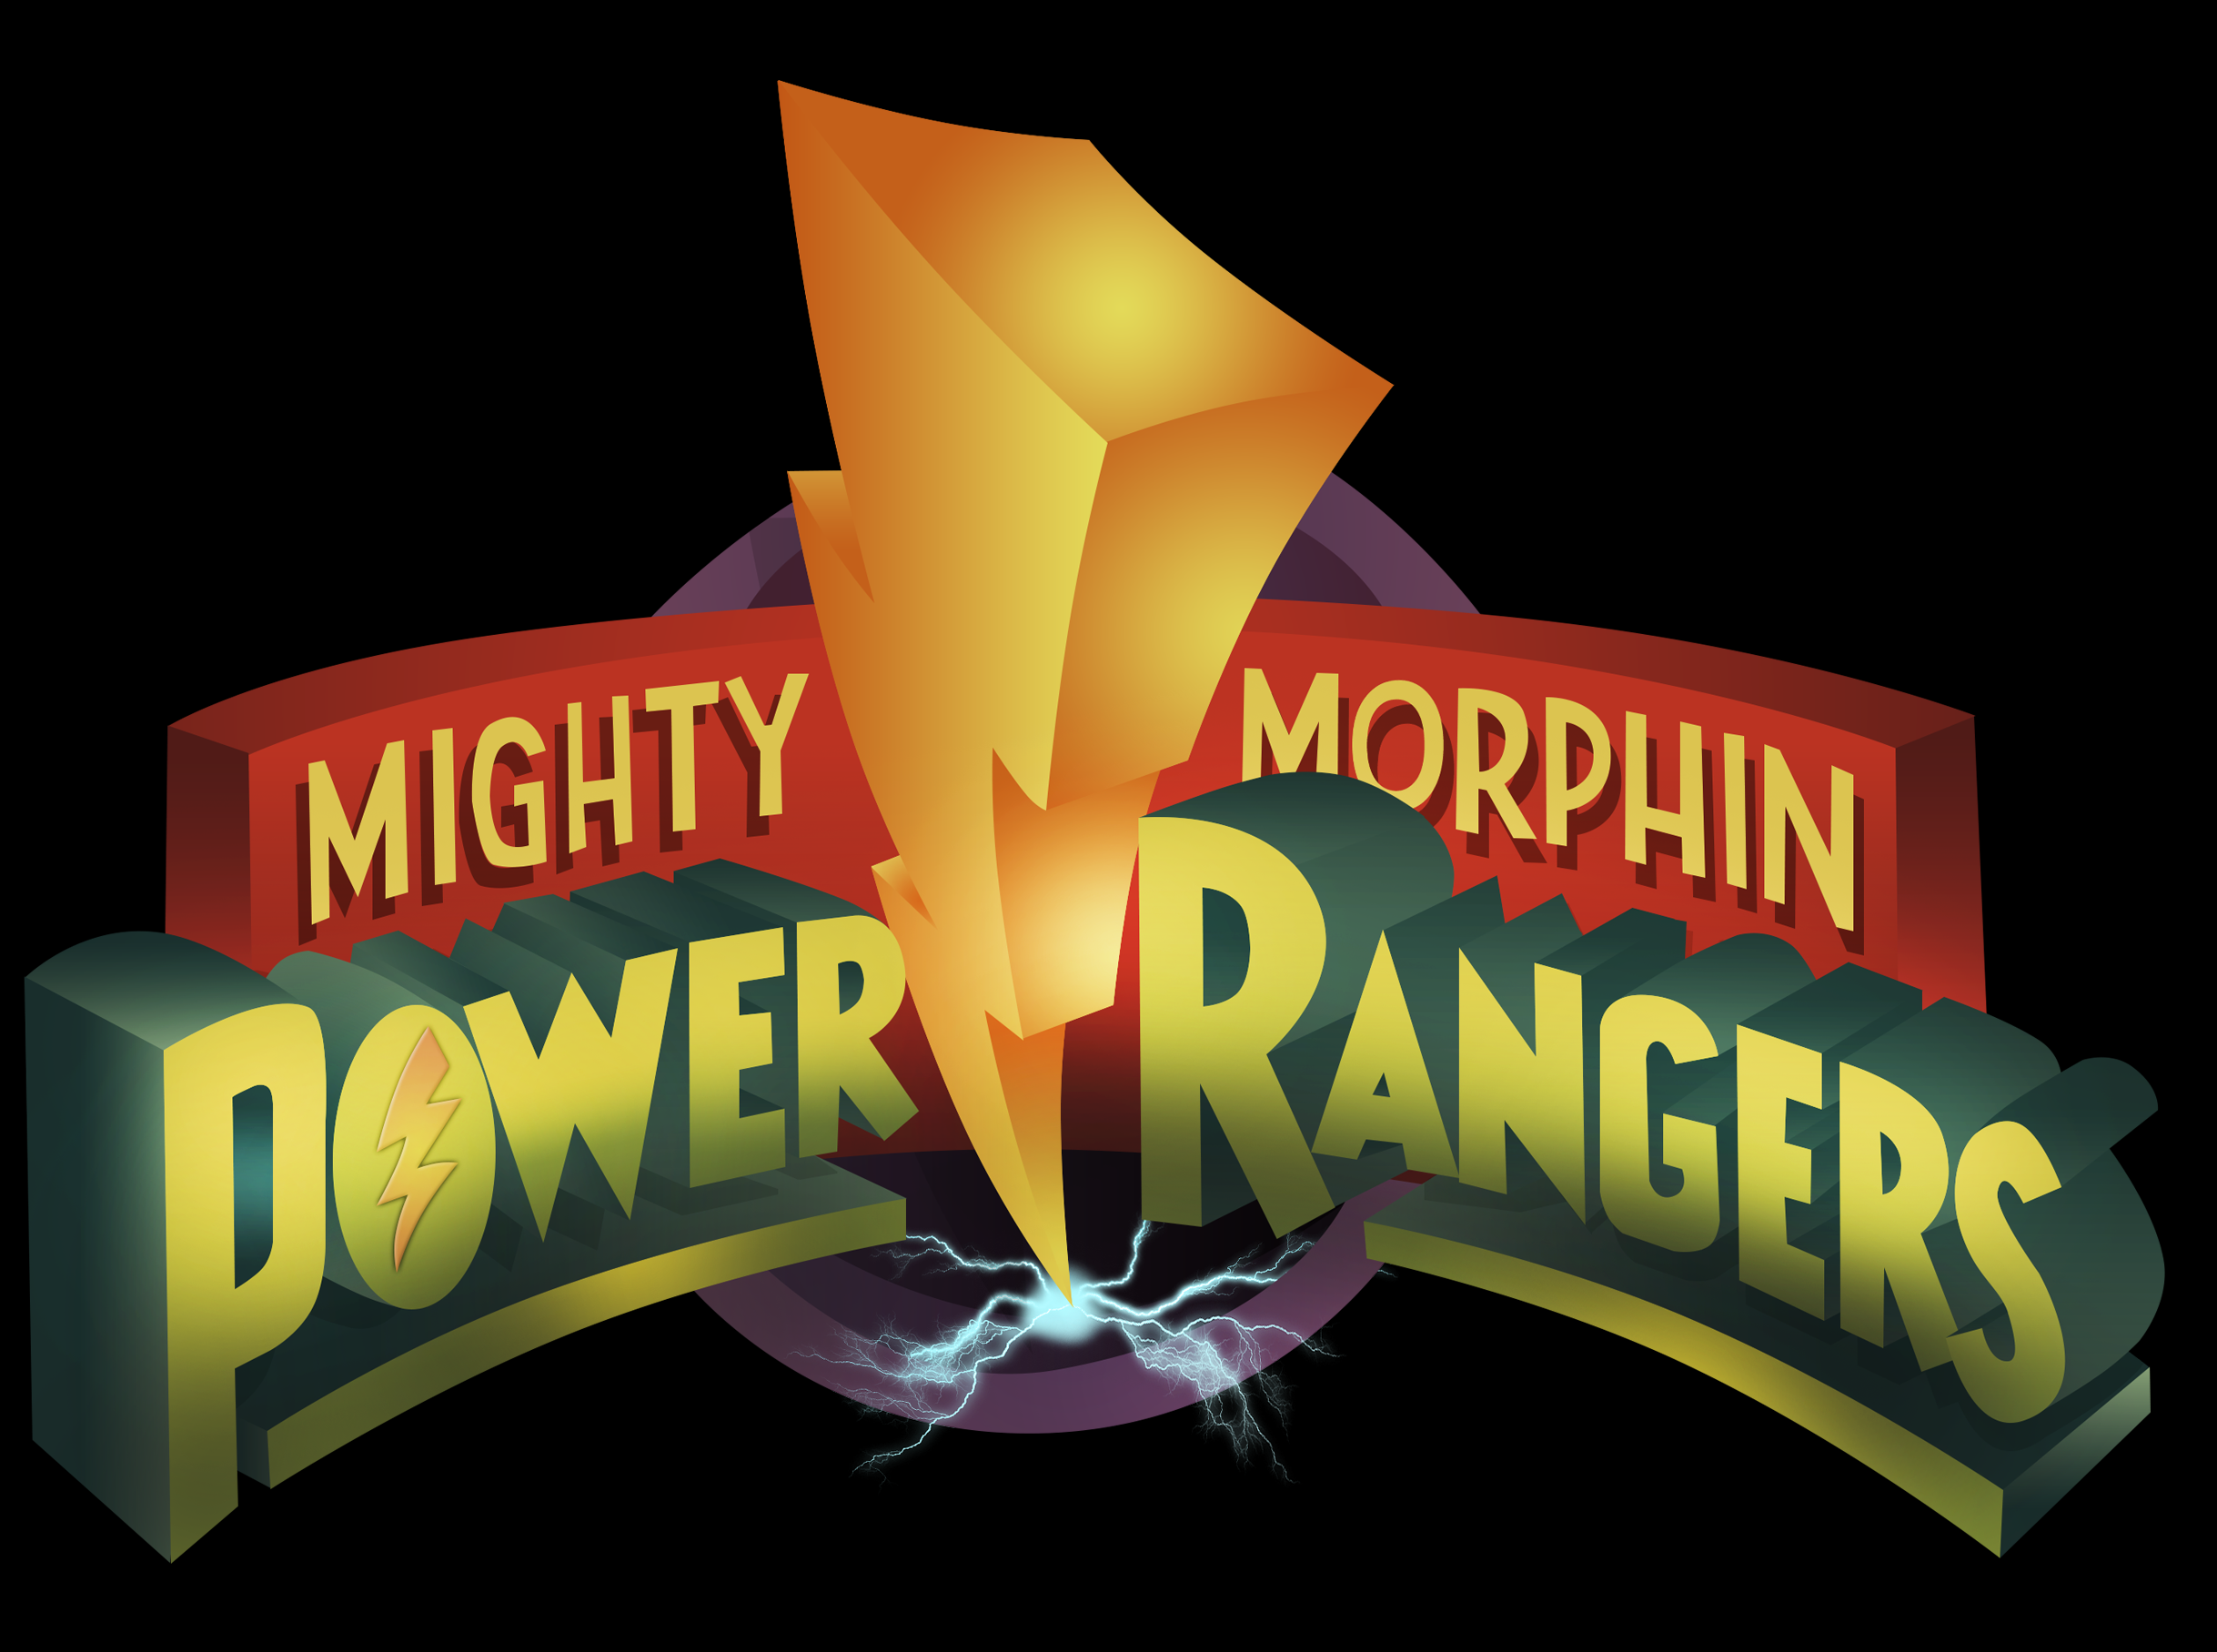 37d2f561542cb4488c3eadcb02be2d65 e1606313996161 20 High-Kicking Facts About Mighty Morphin Power Rangers